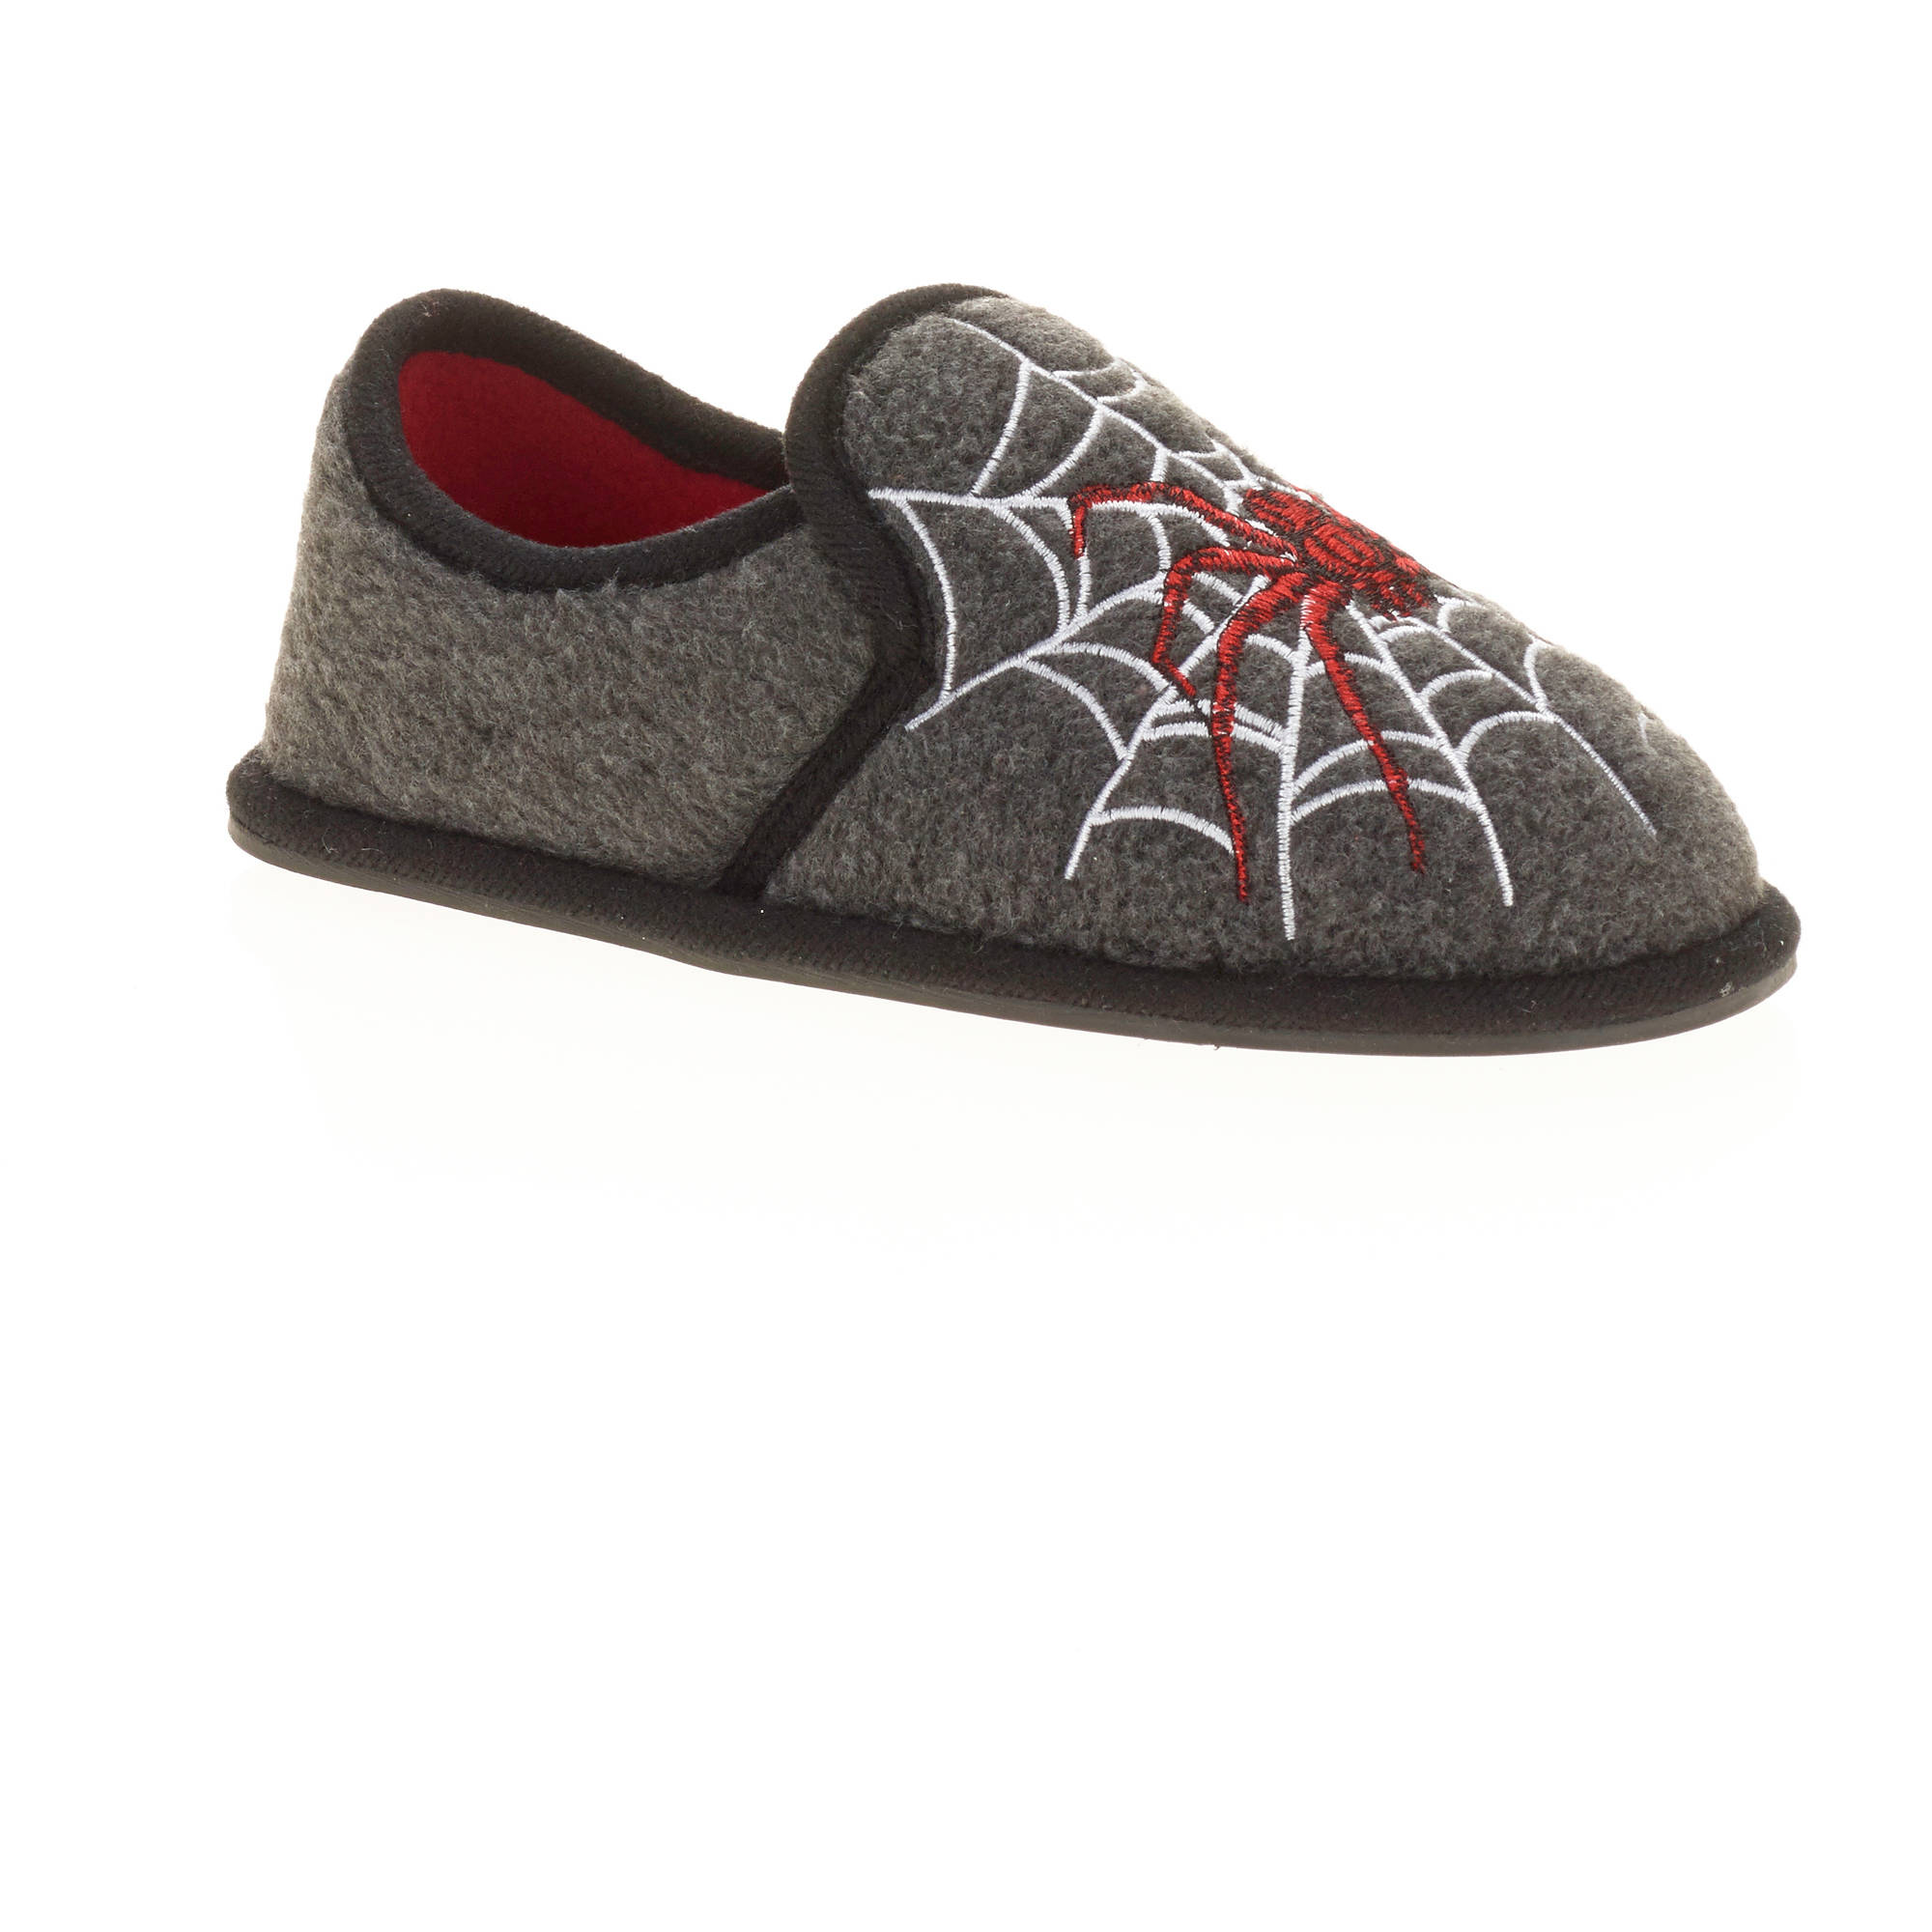 Boy's Spider Aline Slipper